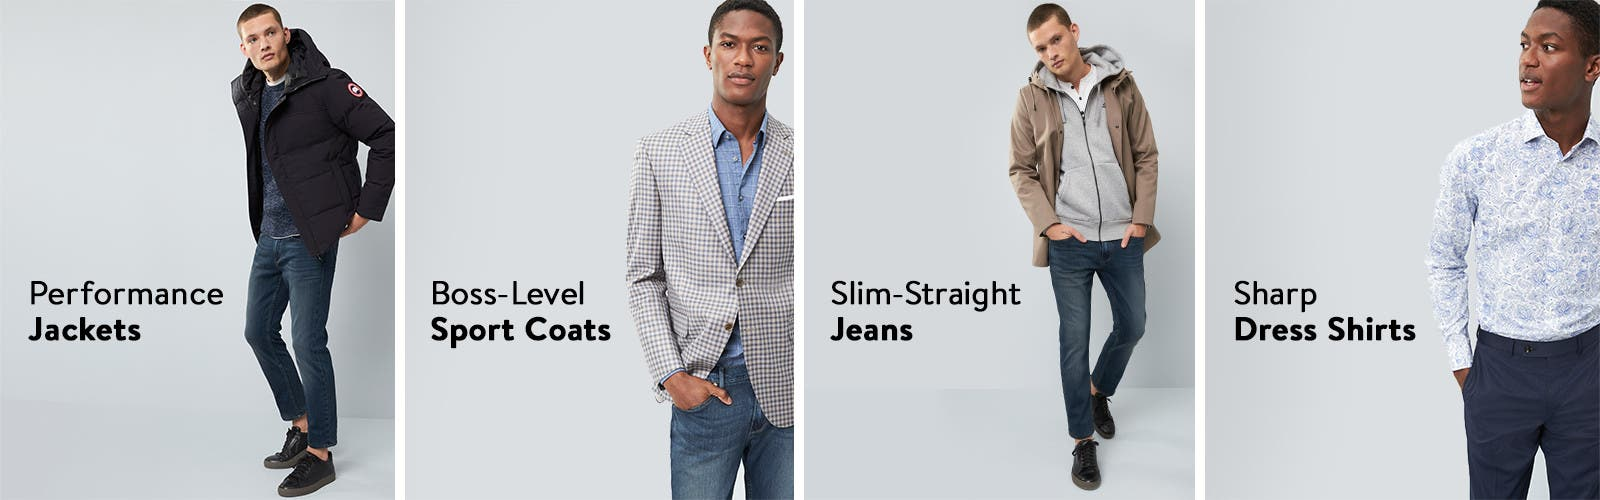 Weather-ready jackets, sport coats, the best jeans and sharp dress shirts.